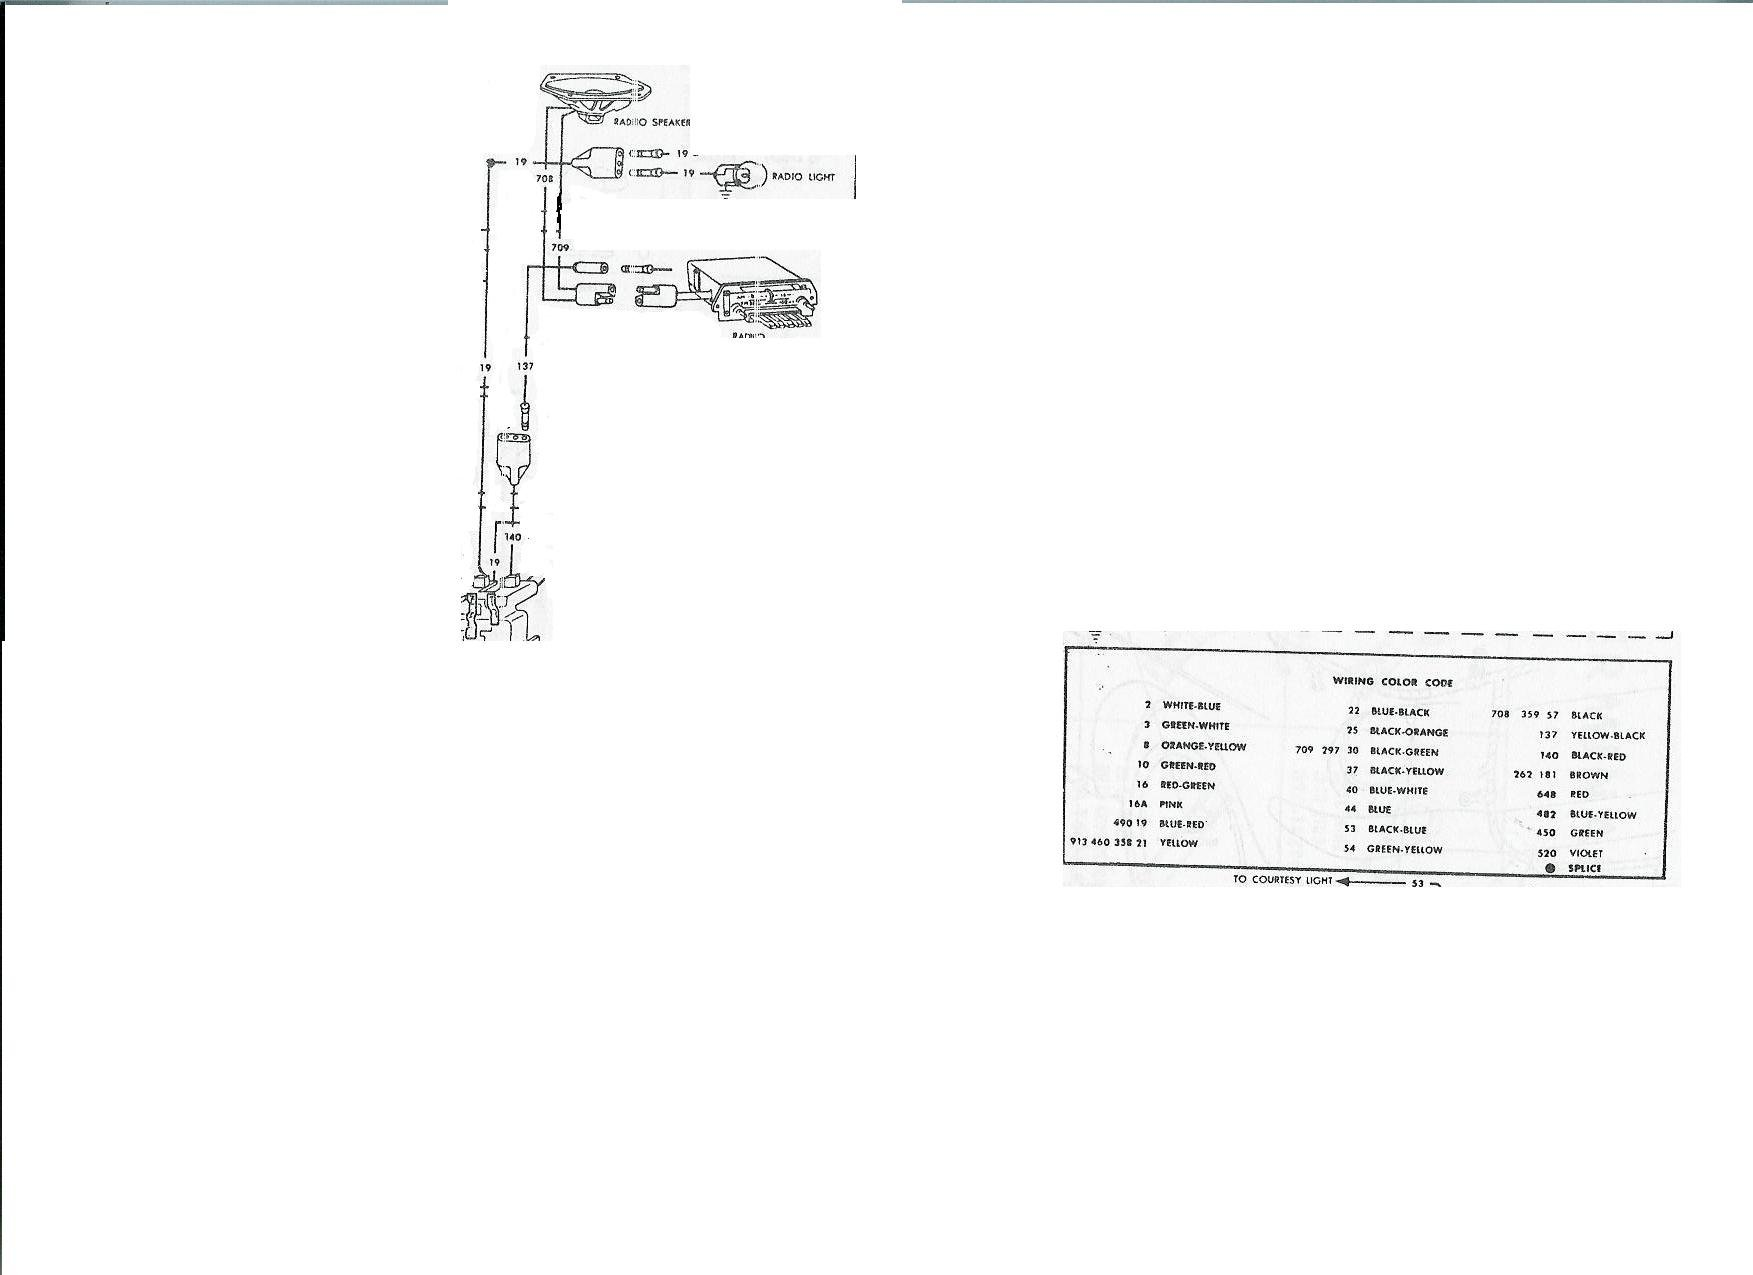 Original Am Radio Wiring On My 1966 Mustang Ford Mustang Forum VW Radio Wiring  Diagram 66 Mustang Radio Wiring Diagram